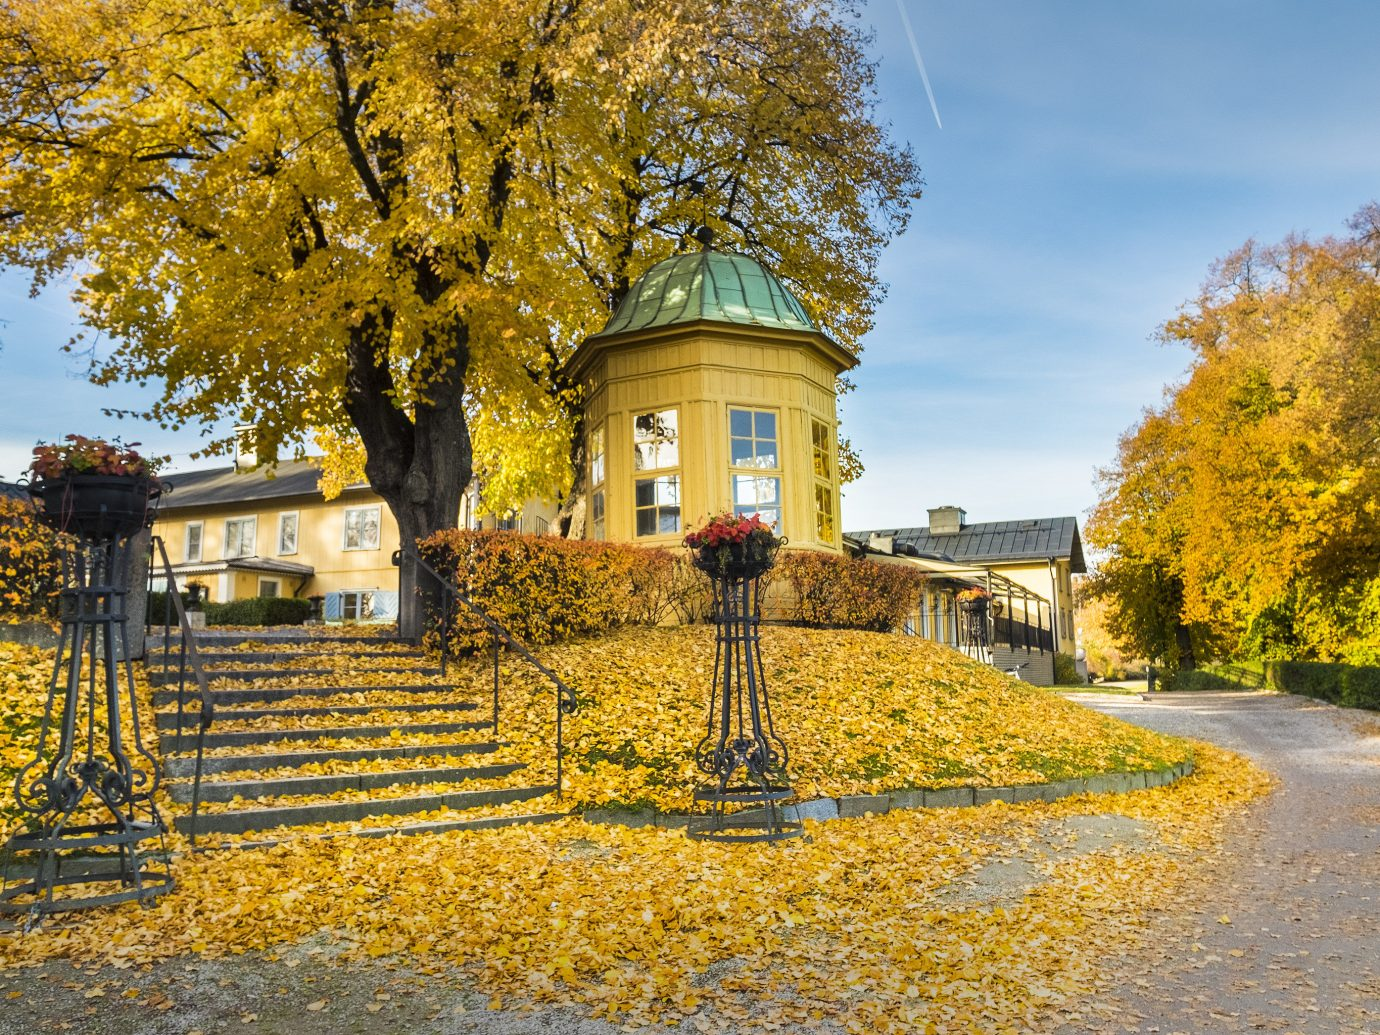 Hotels Stockholm Sweden tree outdoor sky leaf yellow Nature autumn landmark woody plant estate house plant home château stately home real estate sunlight tourist attraction landscape facade grass cottage manor house branch maidenhair tree Village